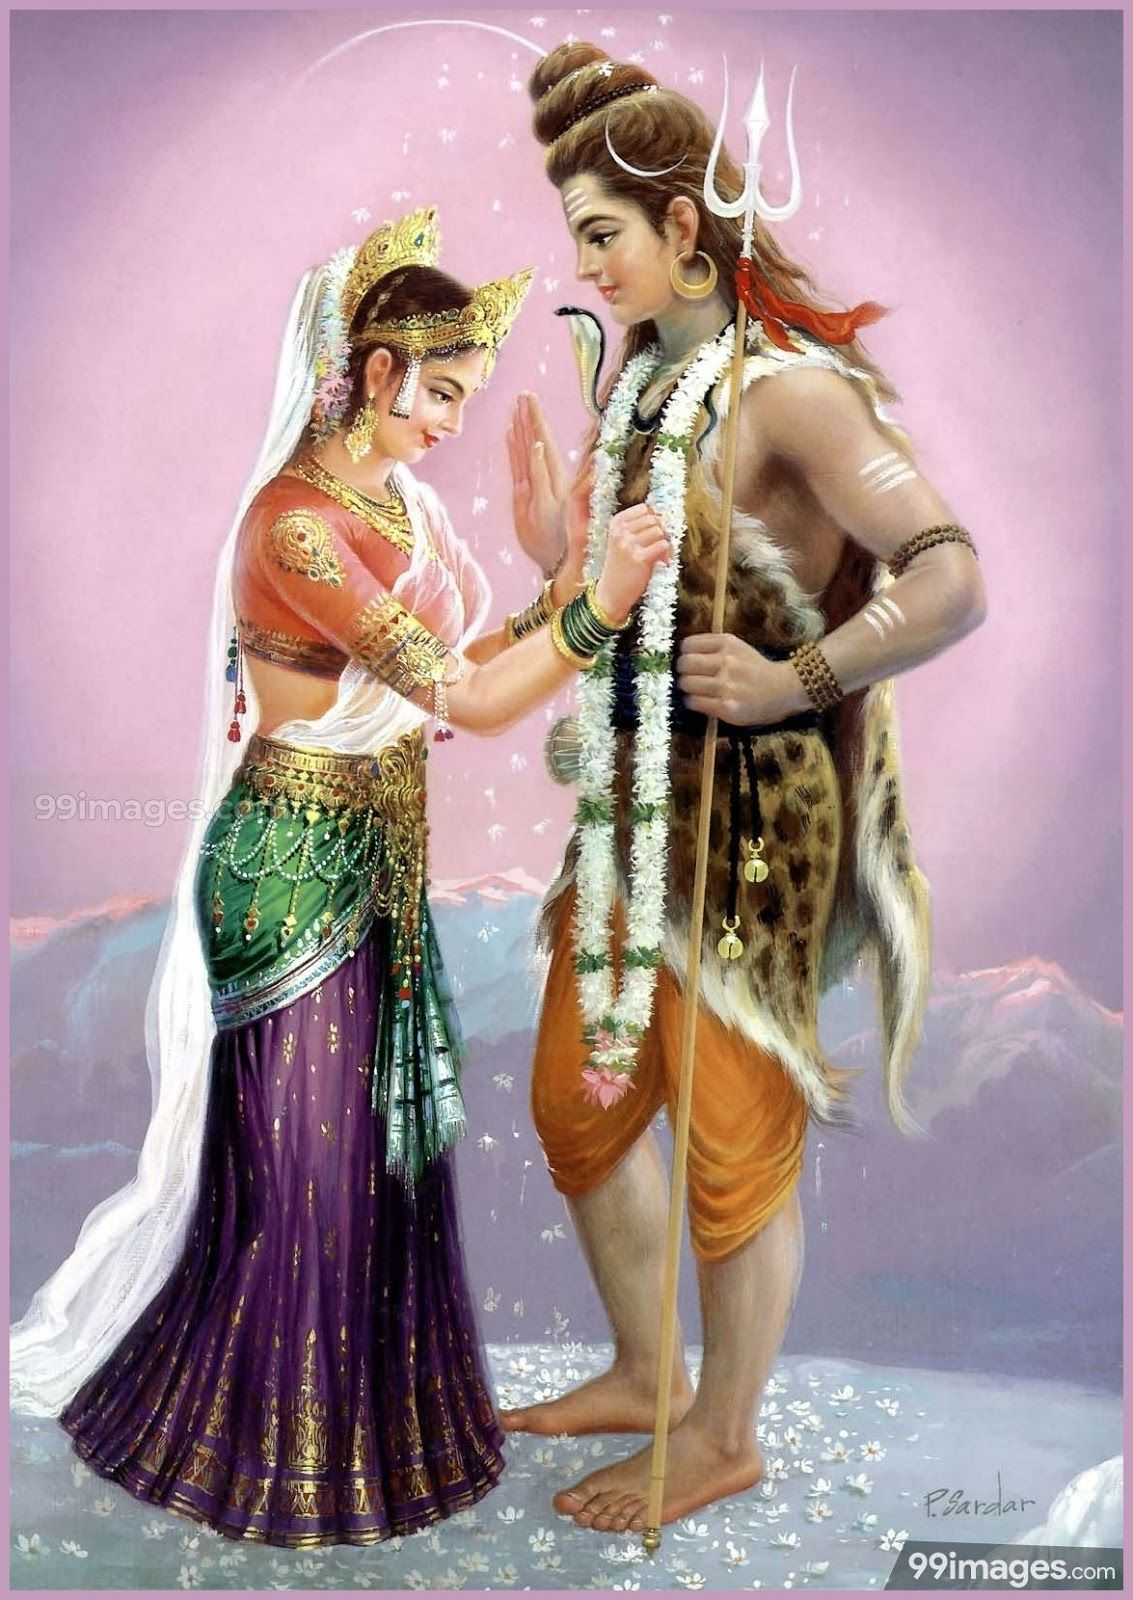 300+ Shiva Parvati HD Images (2021) Love Marriage Pics Free Download | Happy New Year